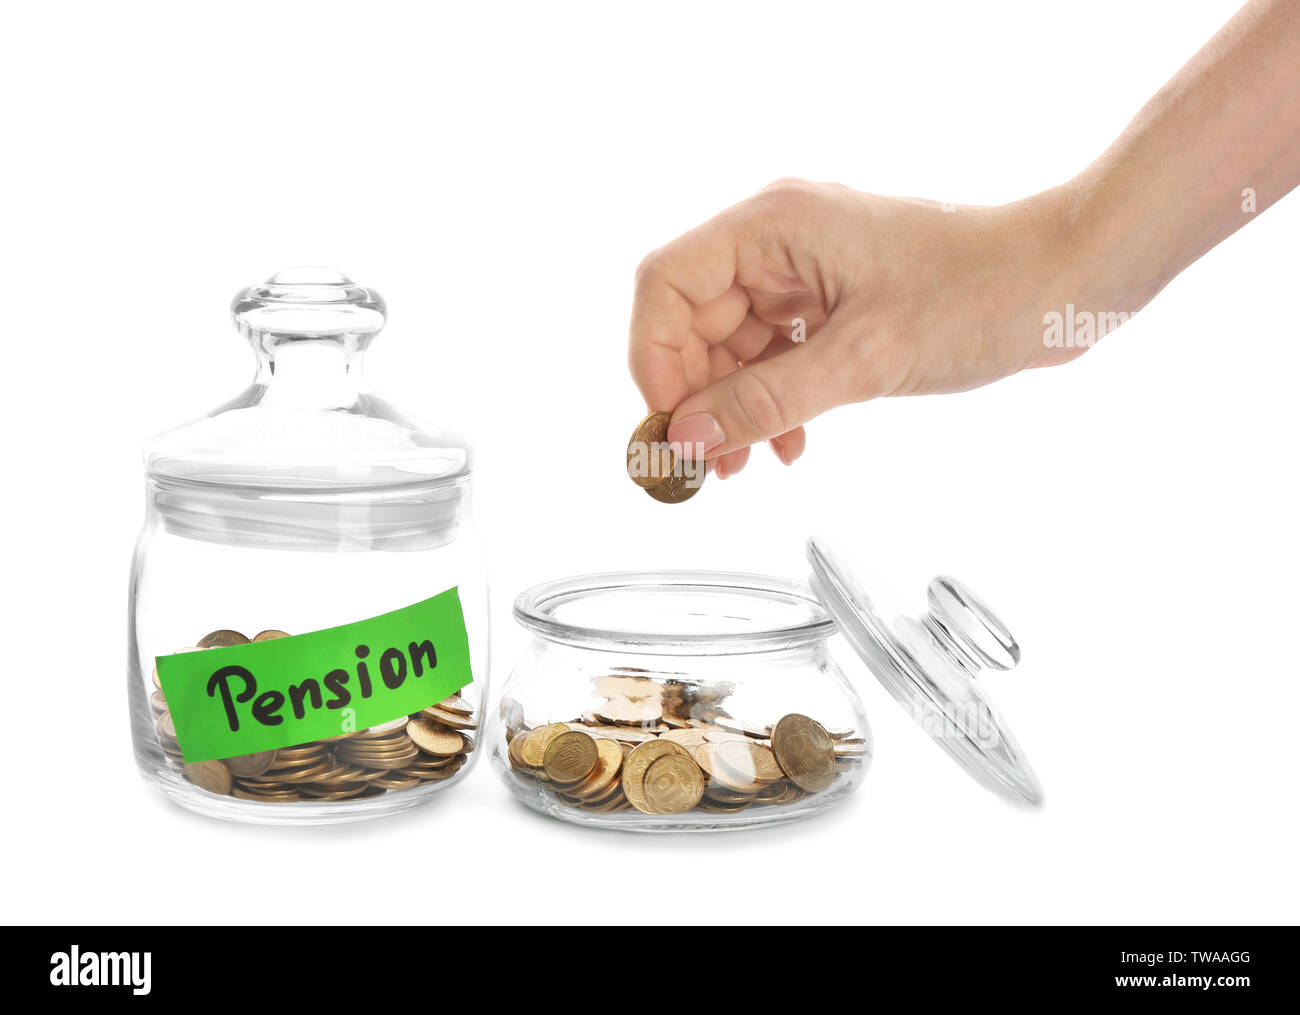 Woman putting coin into glass jar on white background. Pension planning - Stock Image